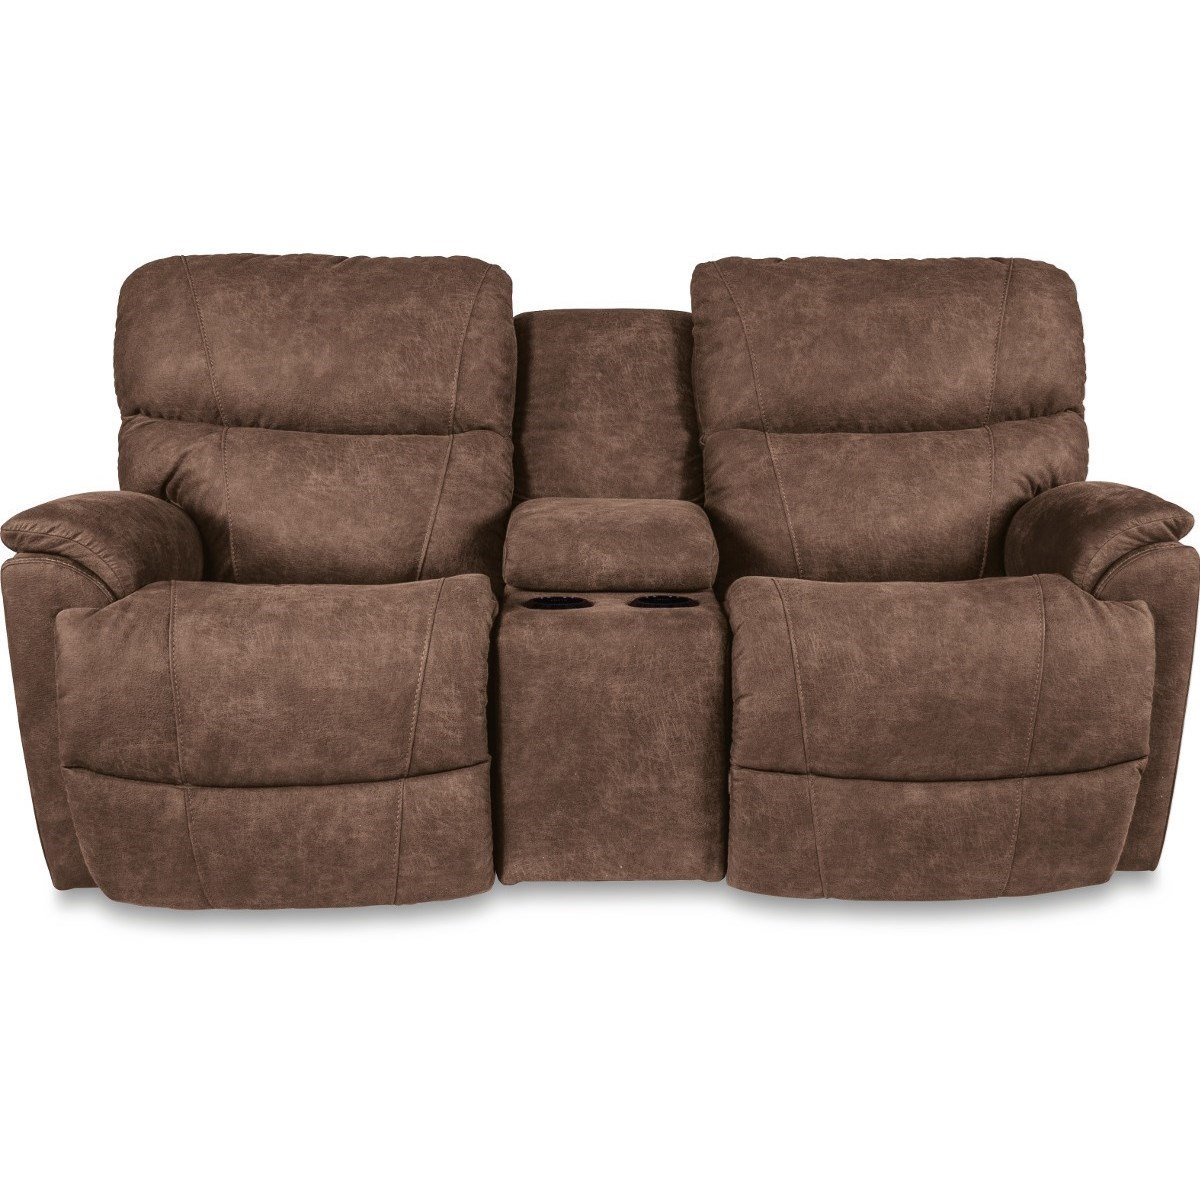 La Z Boy Trouper Reclining Loveseat With Cupholder Storage Console